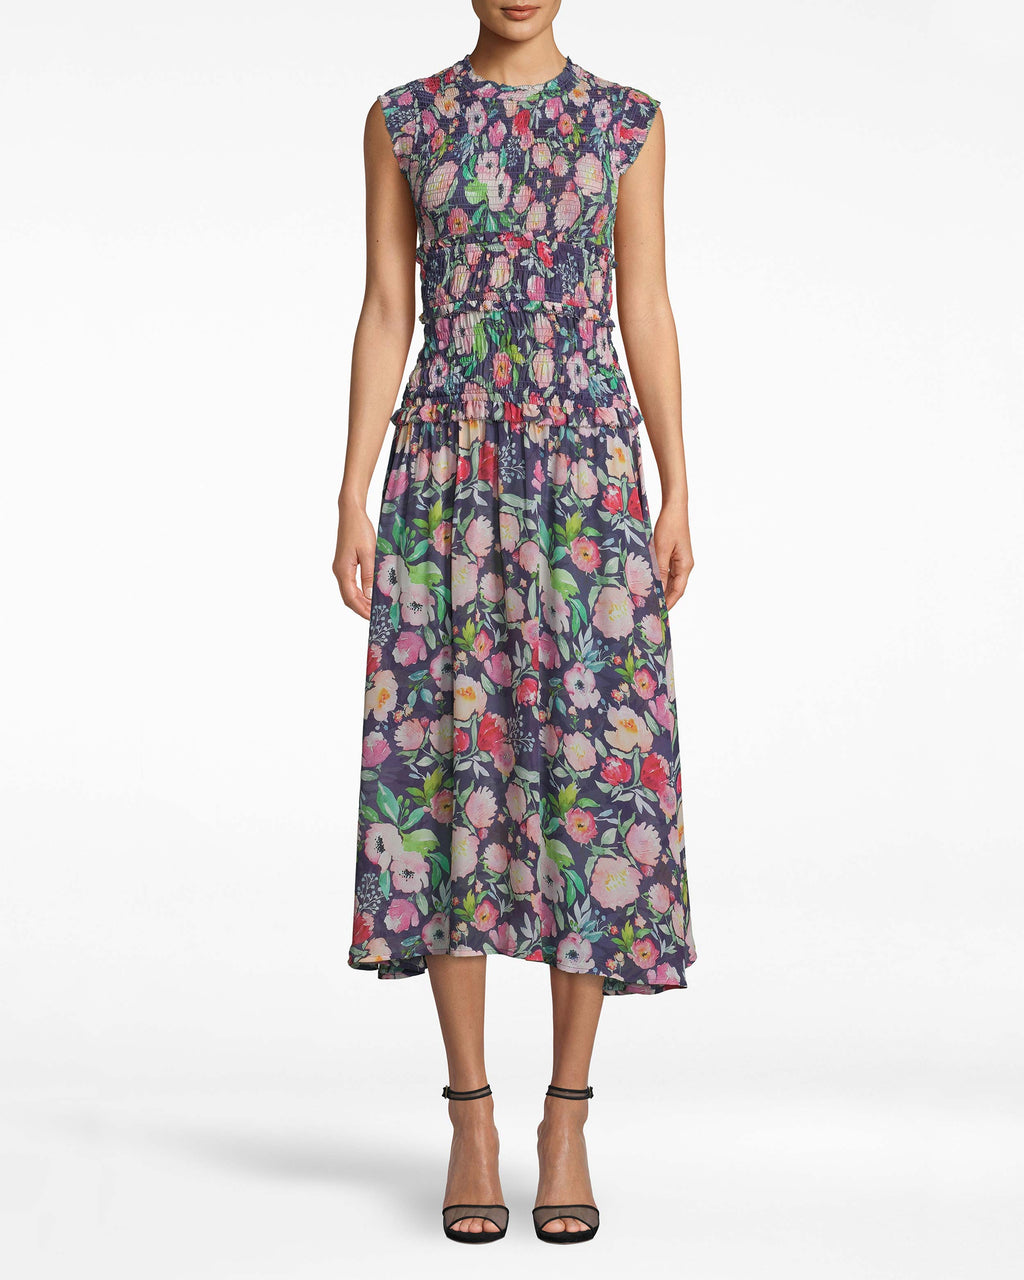 CE20146 - WATERCOLOR FLORAL SMOCKED MIDI DRESS - dresses - midi - THIS DRESS IS AS EFFORTLESS AS IT IS ADORABLE. THE SMOCKED TOP AND FLOWY BOTTOM MAKE FOR THE PERFECT FIT AND FLARE COMBO. SUPER SOFT AND LIGHTWEIGHT, THIS DRESS WILL BE ON ROTATION ALL SPRING AND SUMMER. PAIR WITH YOUR FAVORITE FLATS OR HEELS.